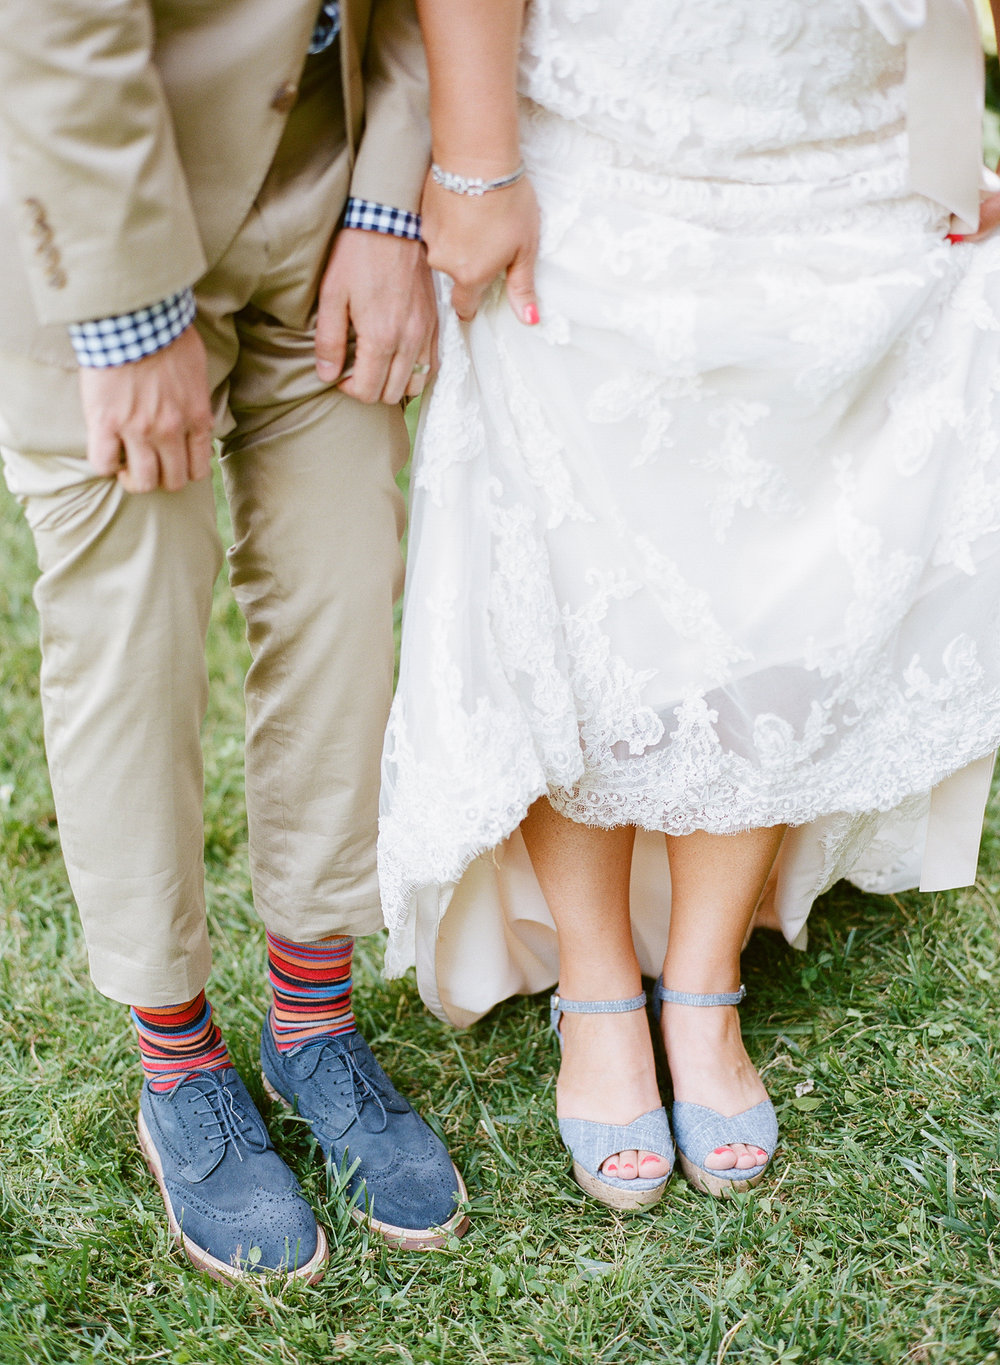 27-bride-groom-shoes.jpg